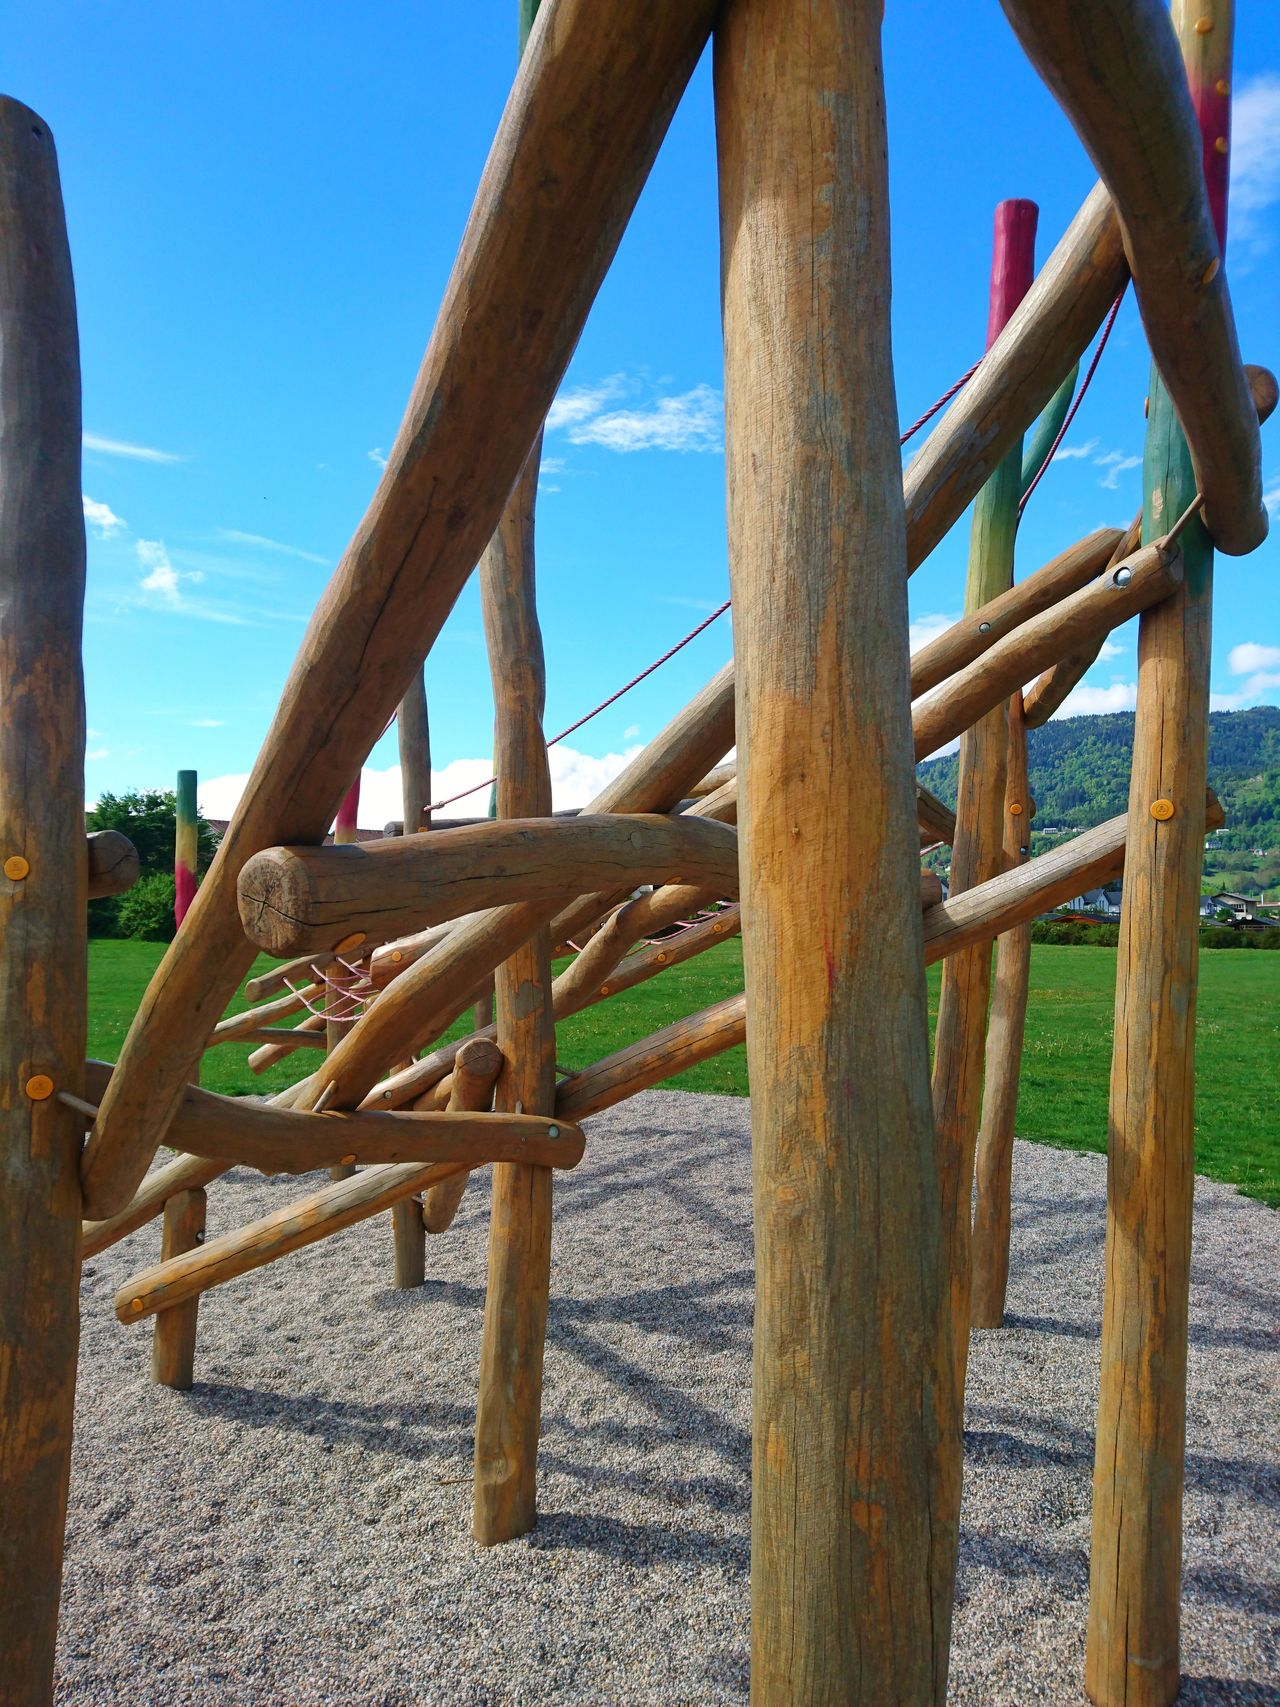 Wood - Material Outdoors Sky Day No People Playground Playground Equipment Playgrounds Architecture Wood Beam Beams Monkey Bars Climbing Frame Climbing